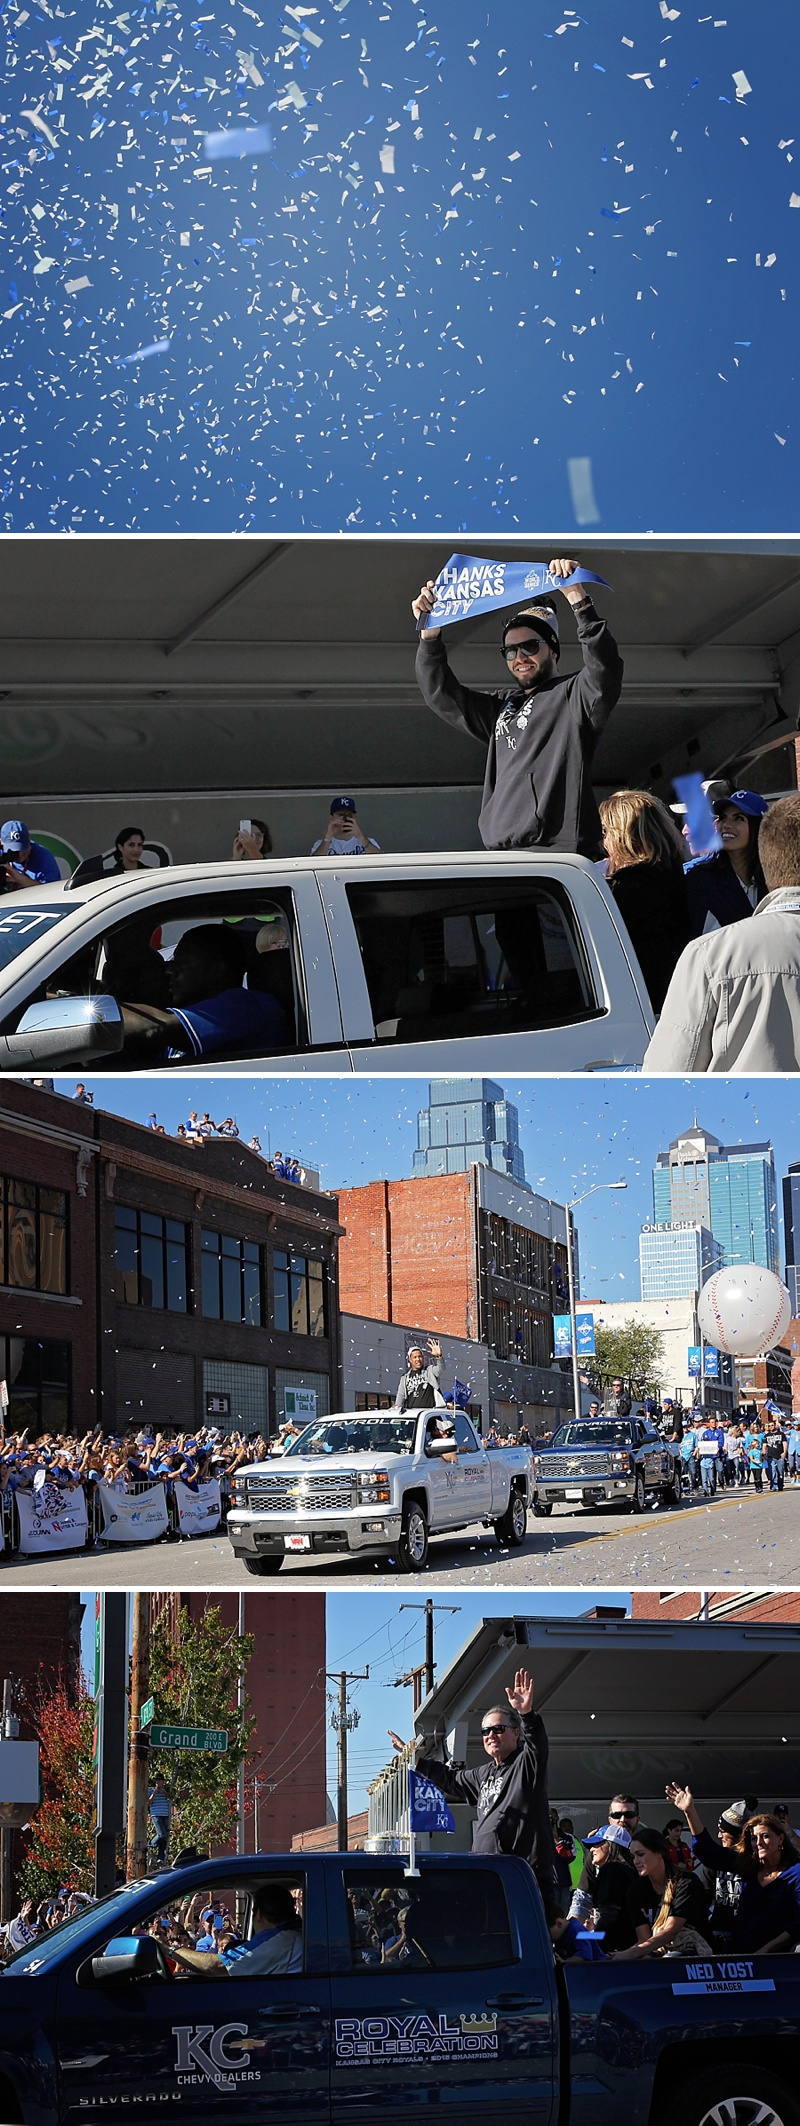 Kansas City Royals Victory Parade 2015